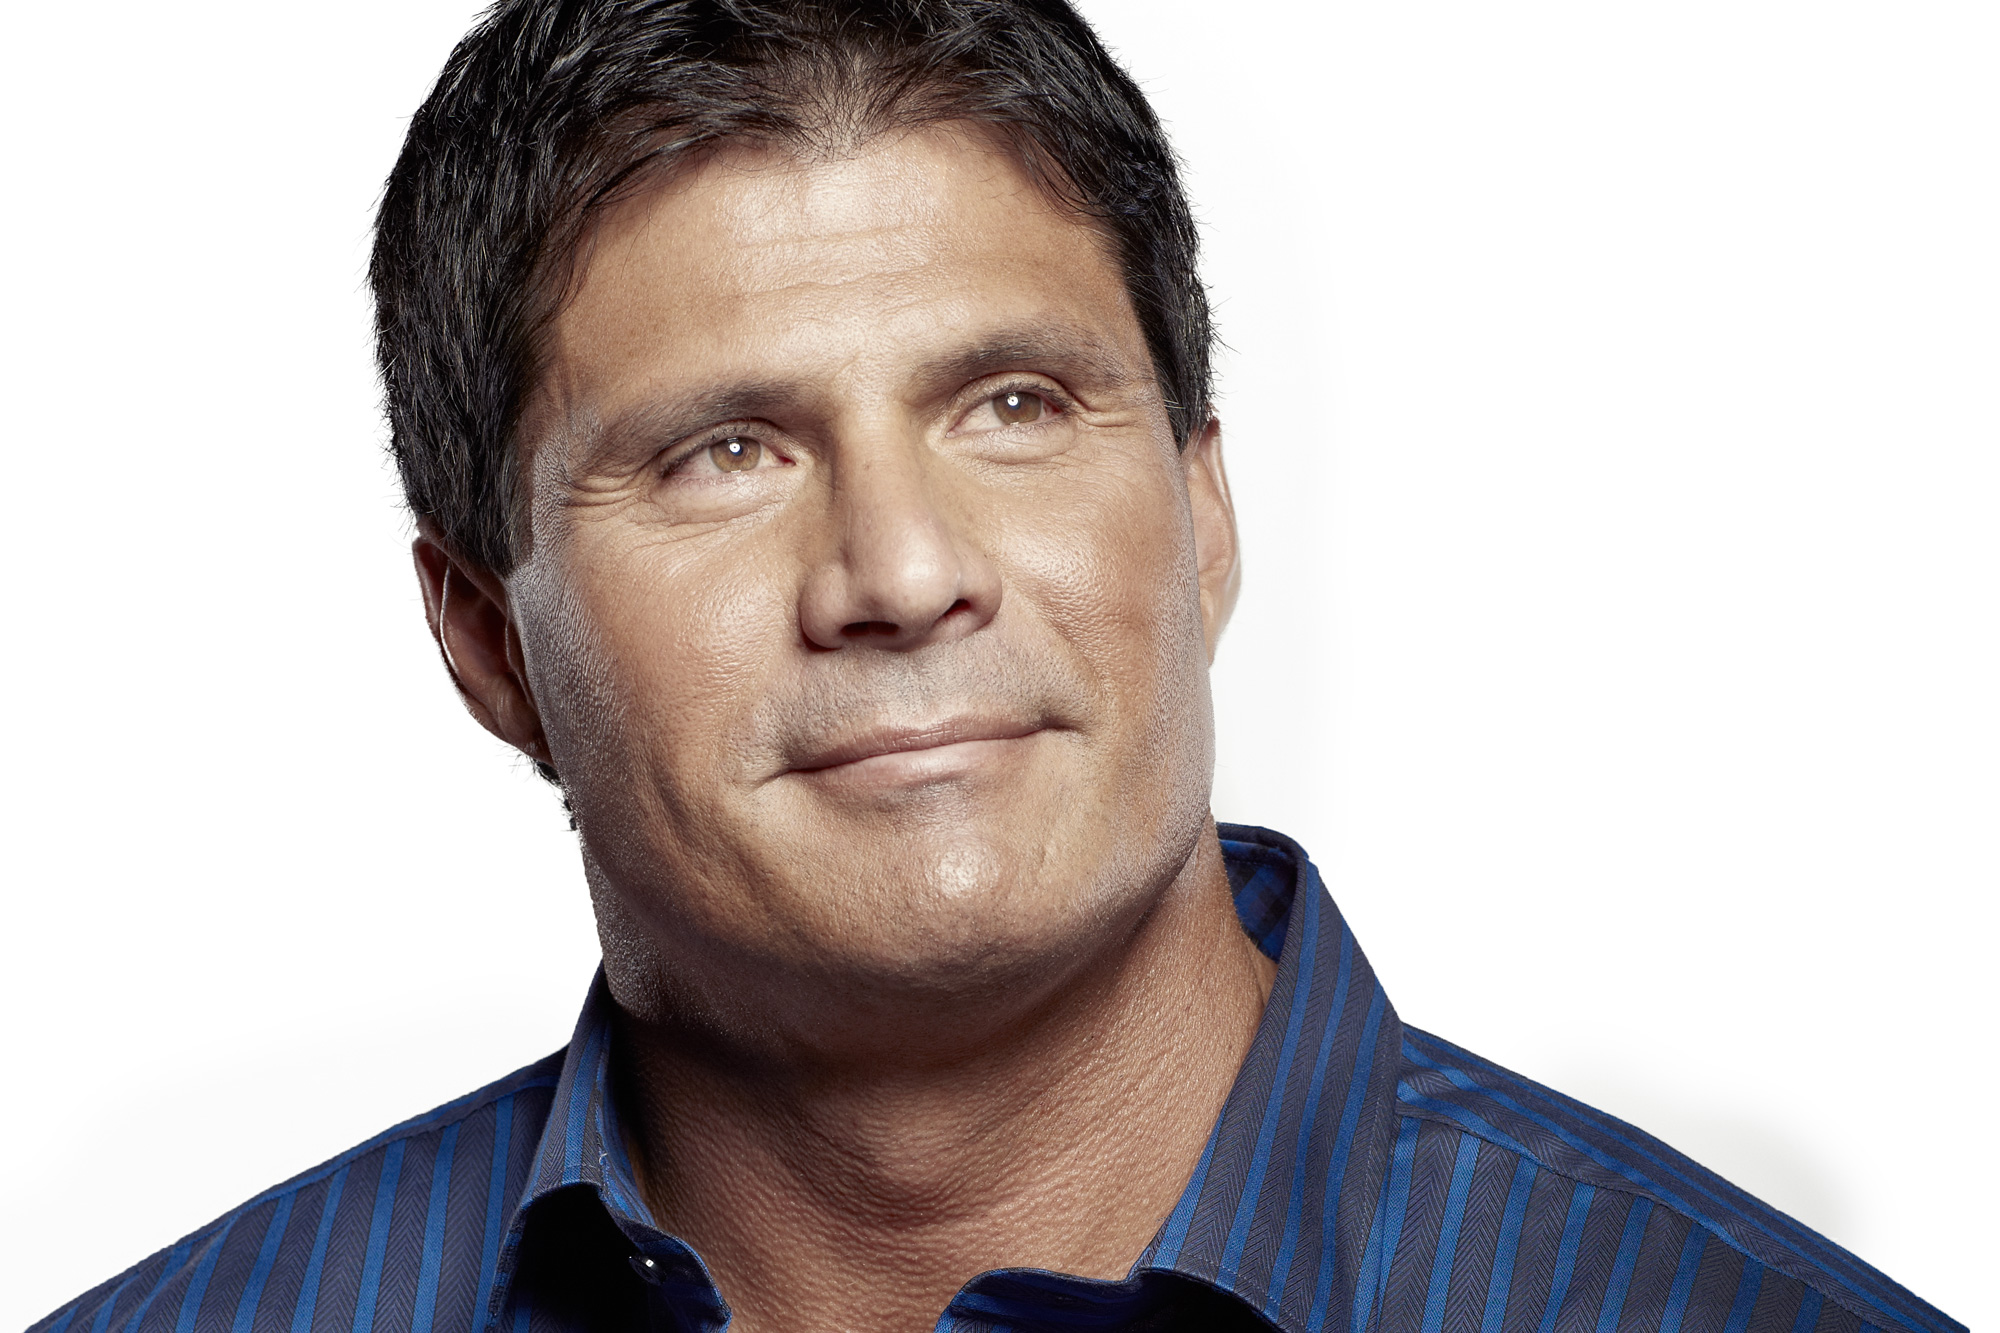 Jose Canseco Publicity Photos